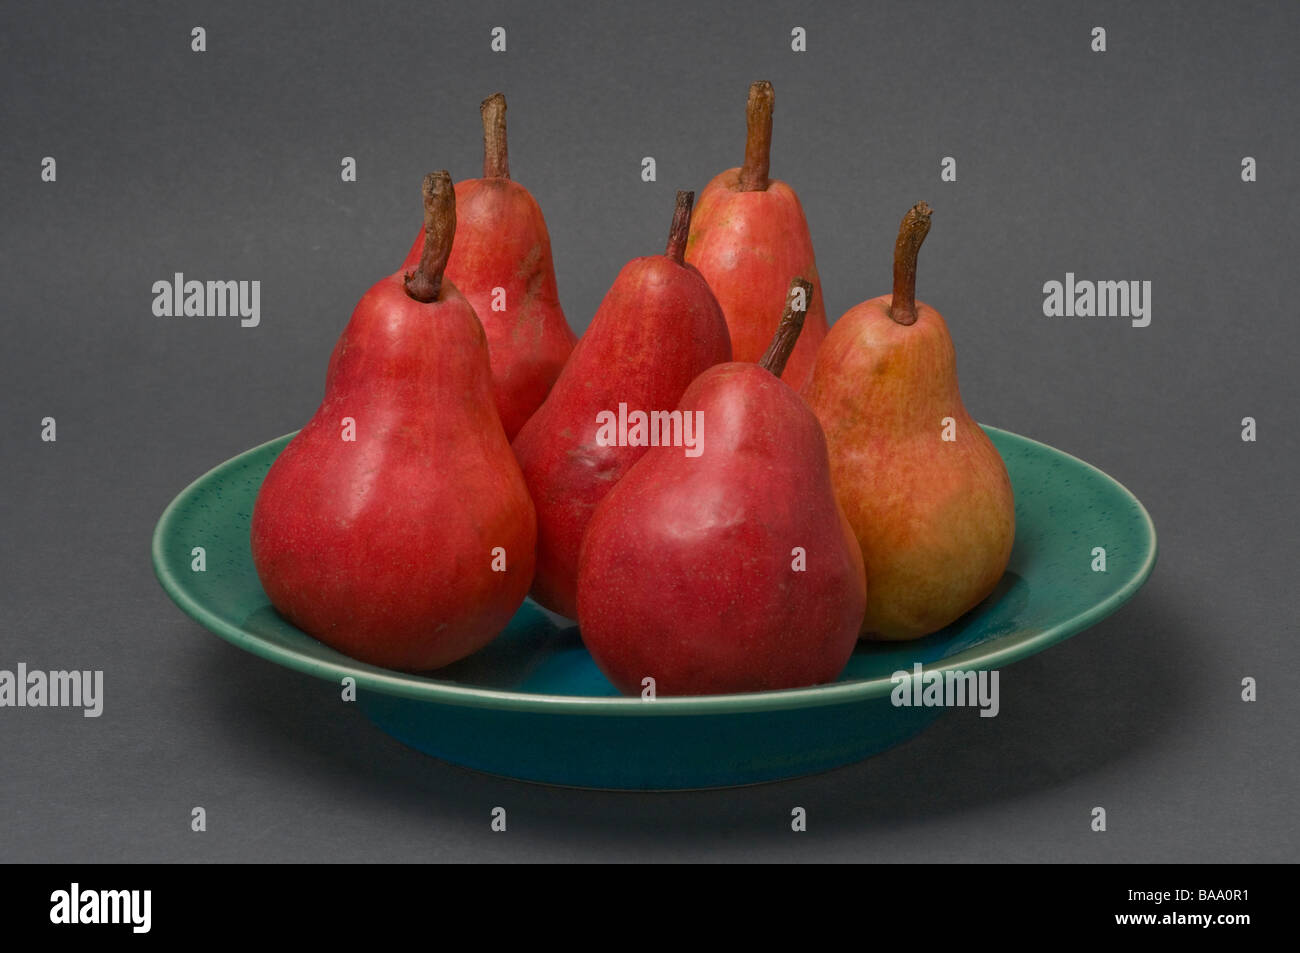 Ripe red pears variety 'Sensation' - Stock Image